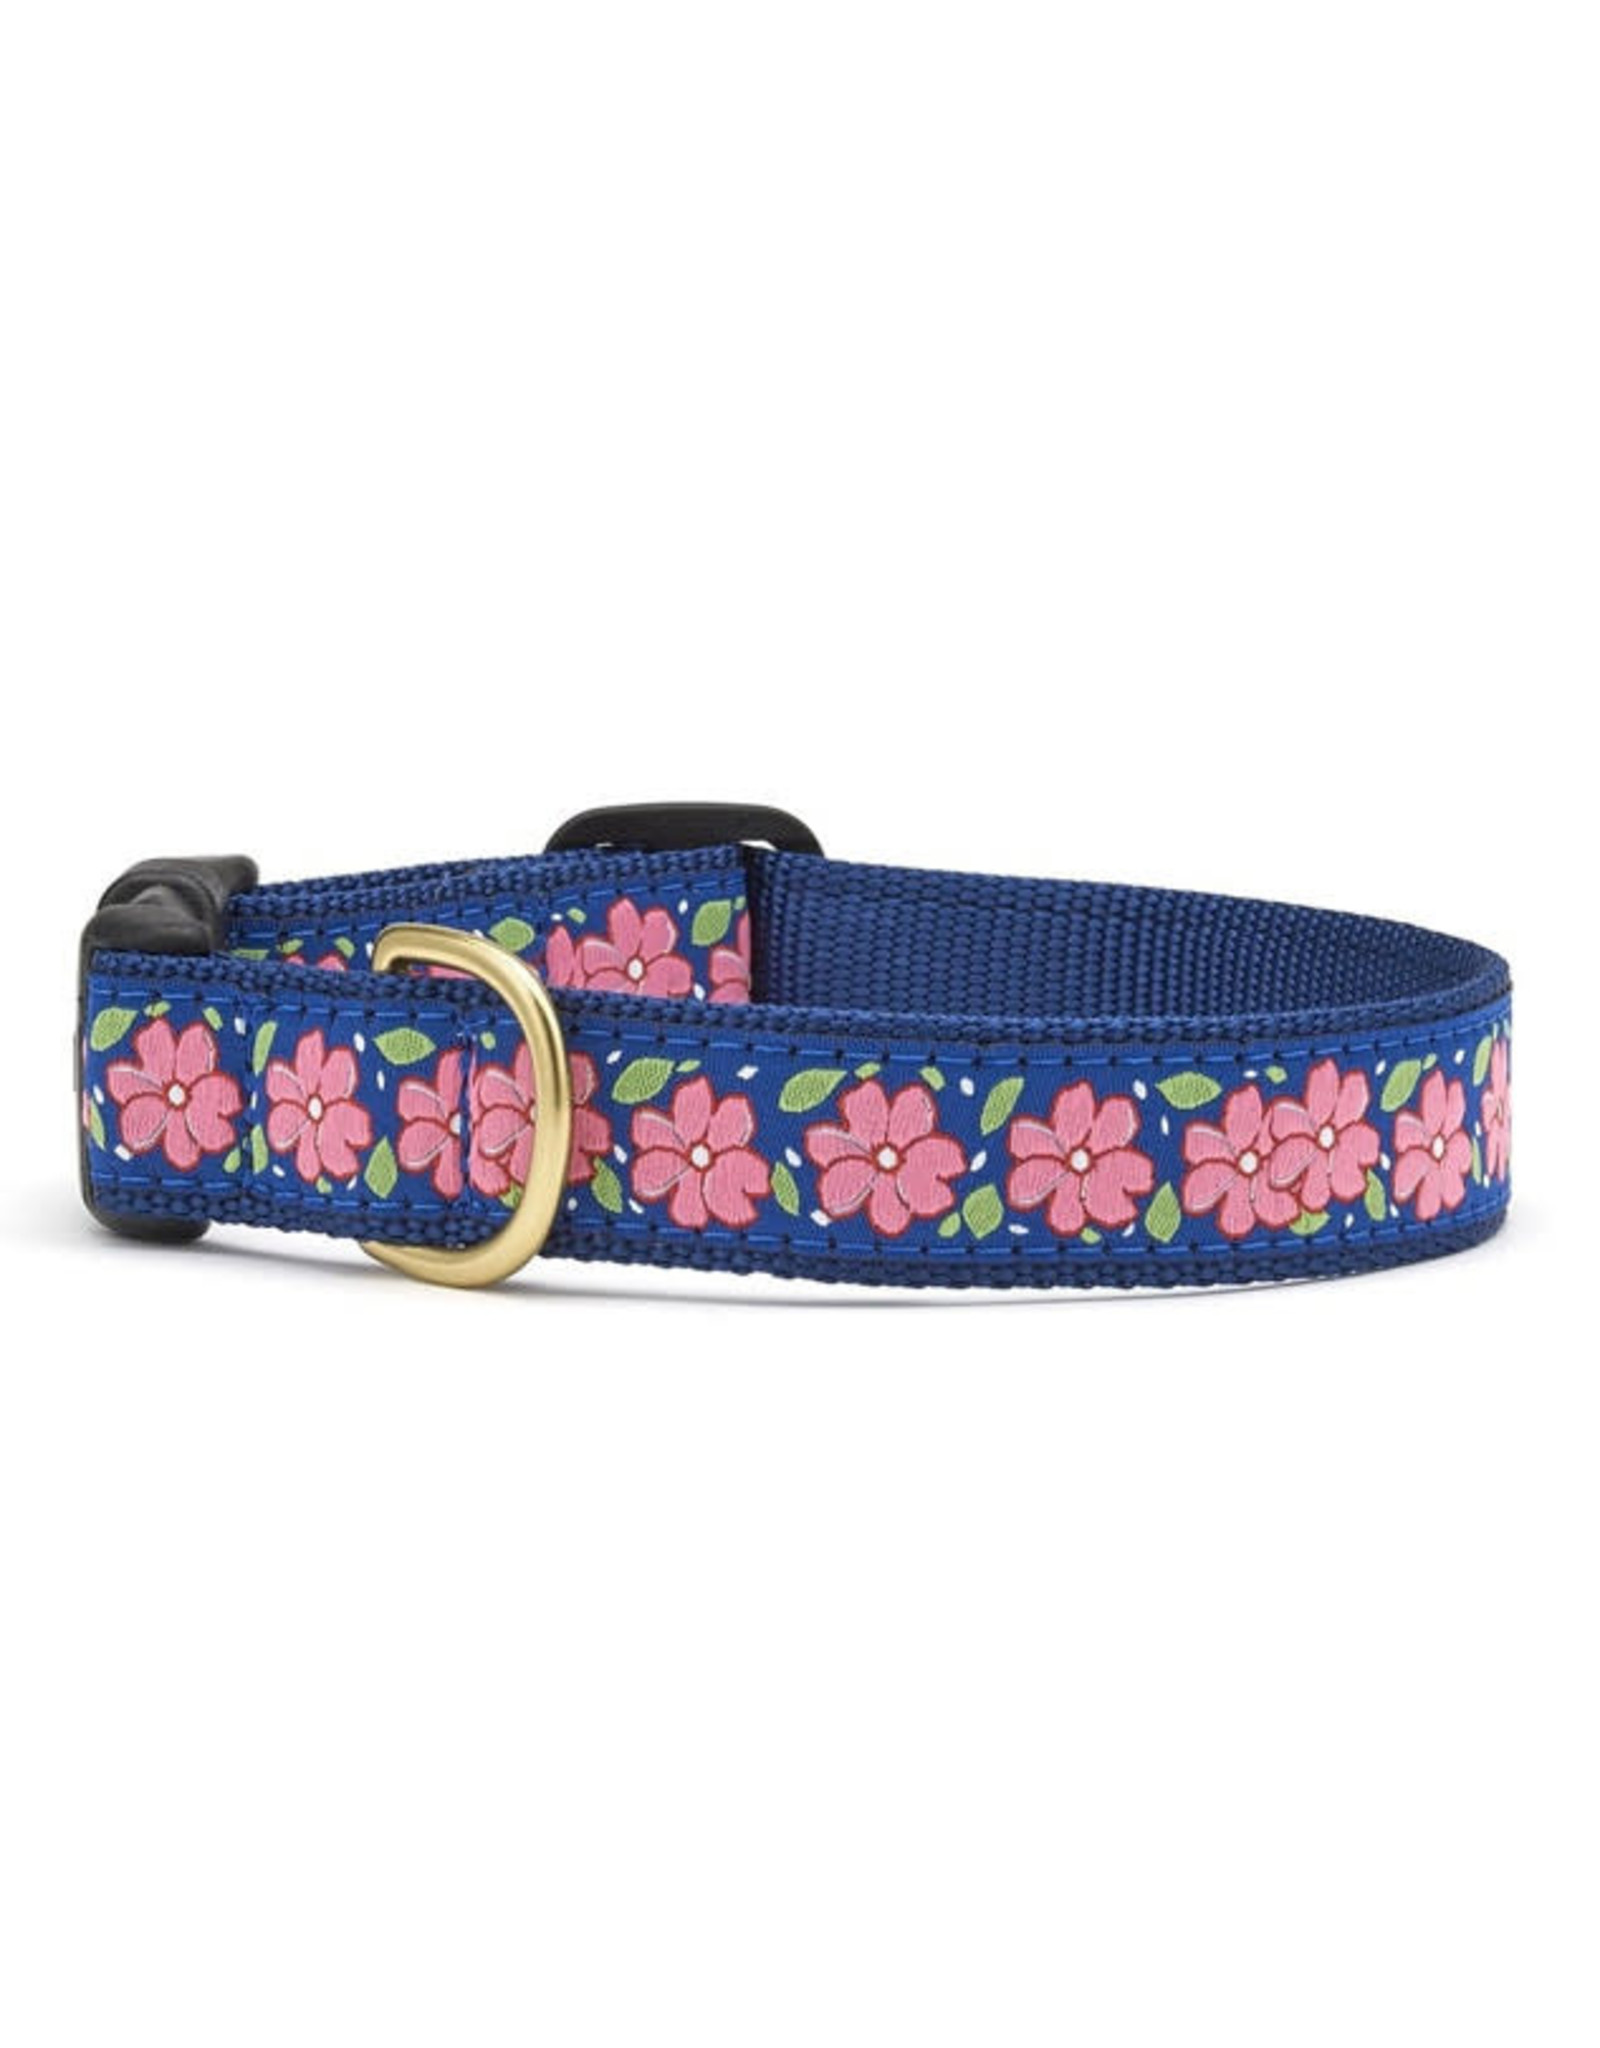 Up Country Pink Garden Collar: Wide, M